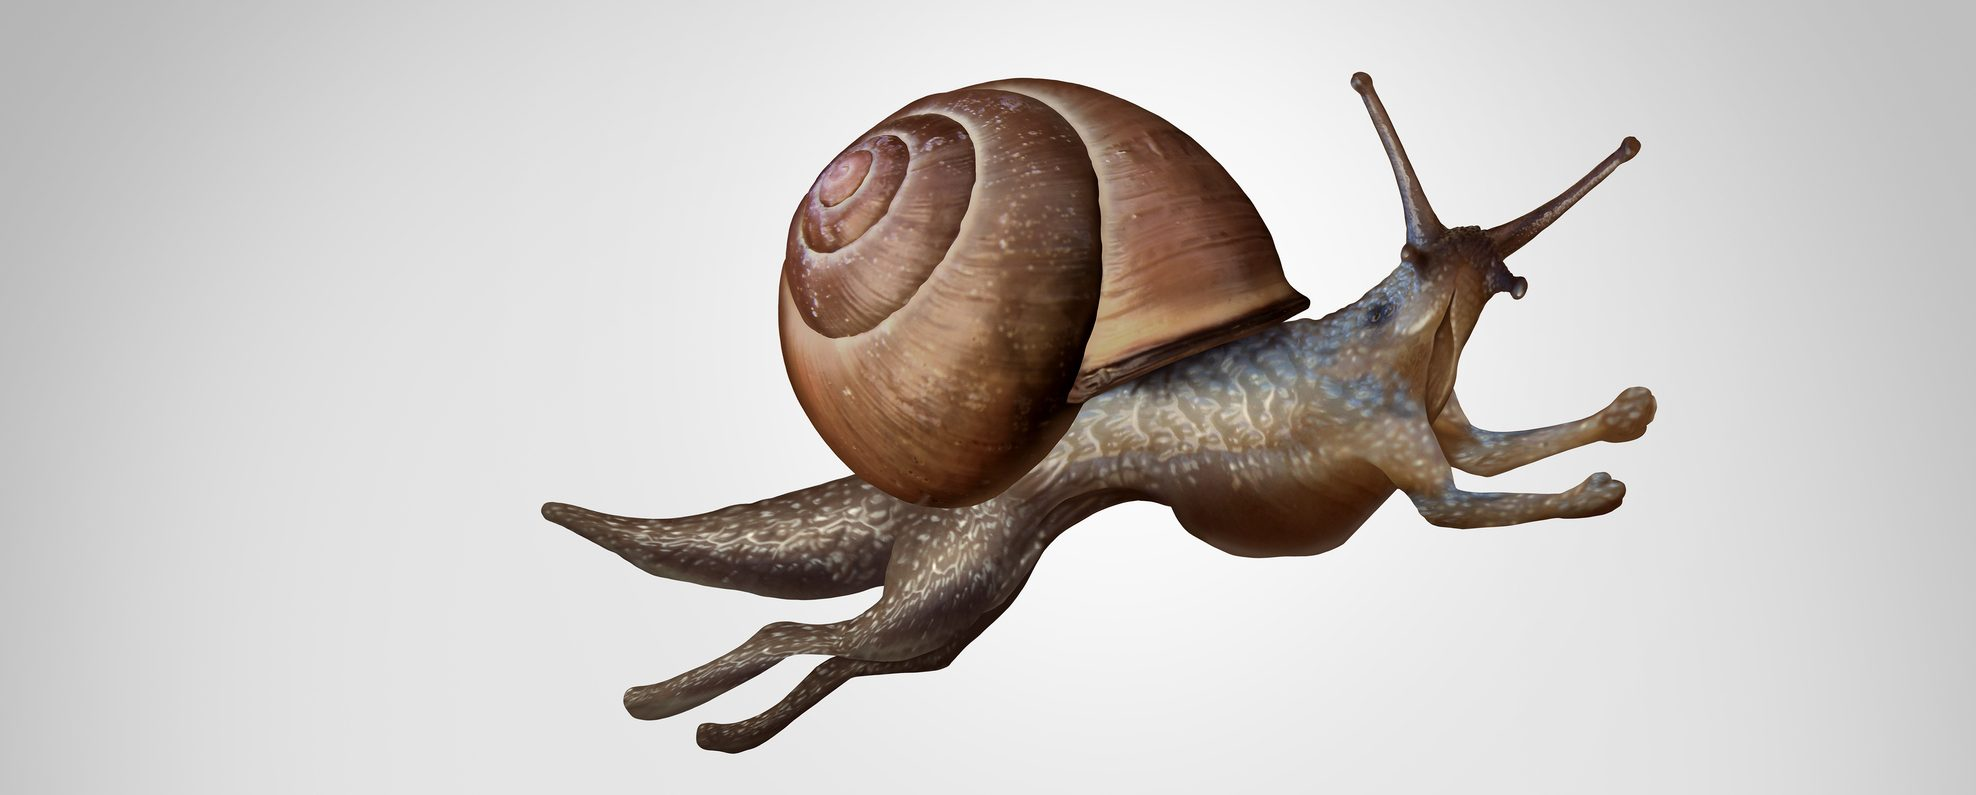 Concept Of Change - flying snail